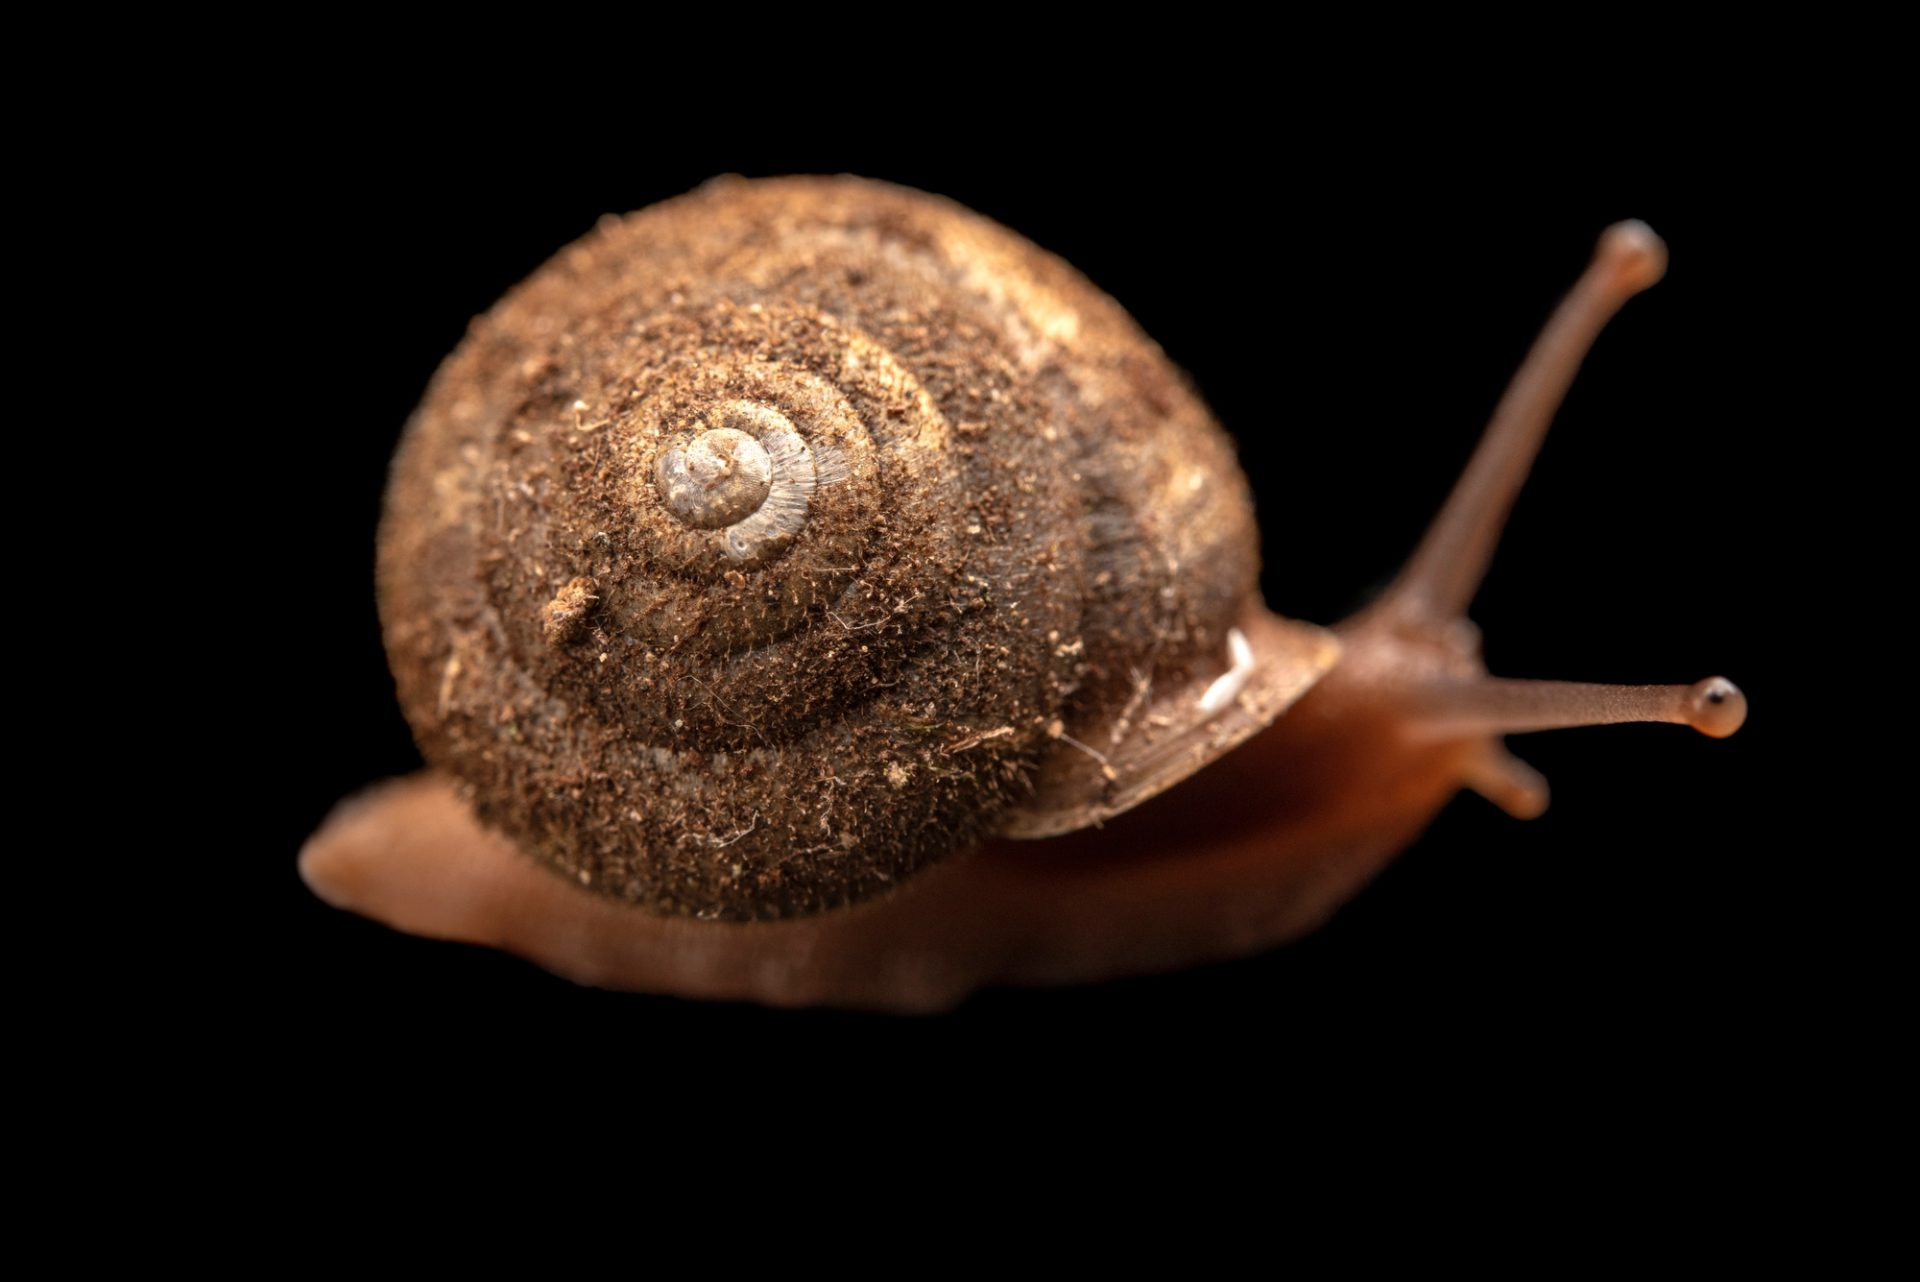 Photo: A Northwest hesperian snail, Vespericola columbianus, at A Rocha Brooksdale Environmental Center in Surrey, BC.